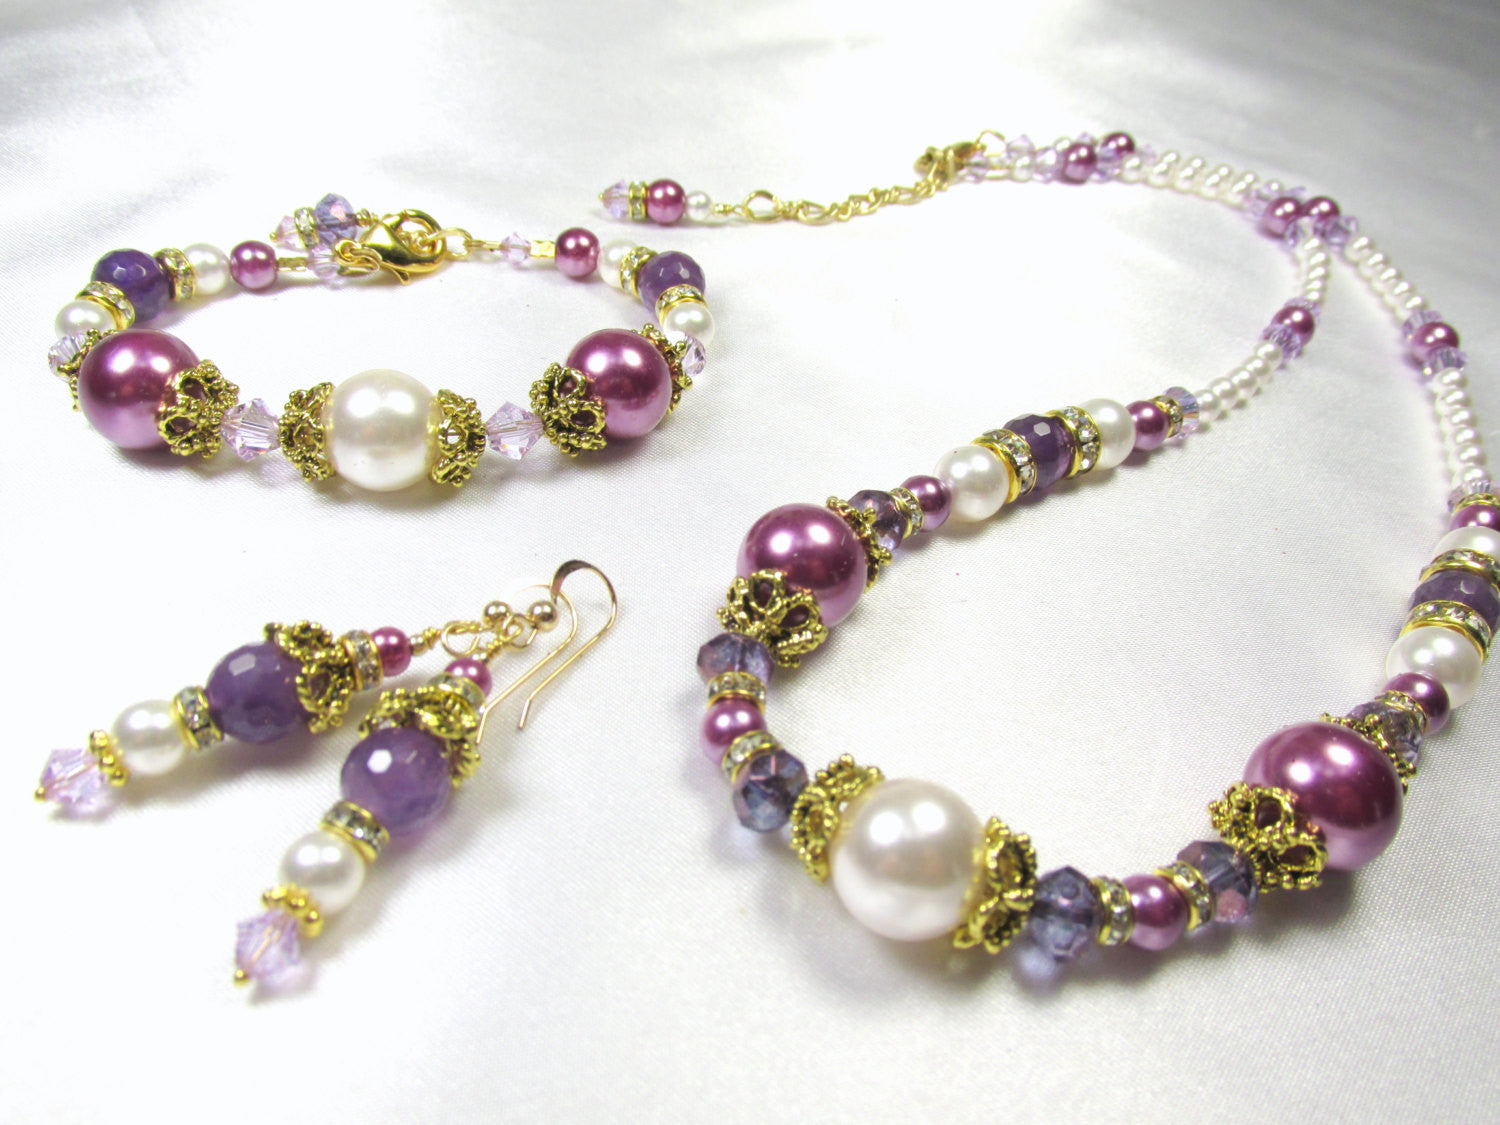 Vintage Inspired Purple Amethst and White Swarovski Pearl Earrings with Swarovski crystals in Antique Gold findings on 14k gold fill wires - Odyssey Creations